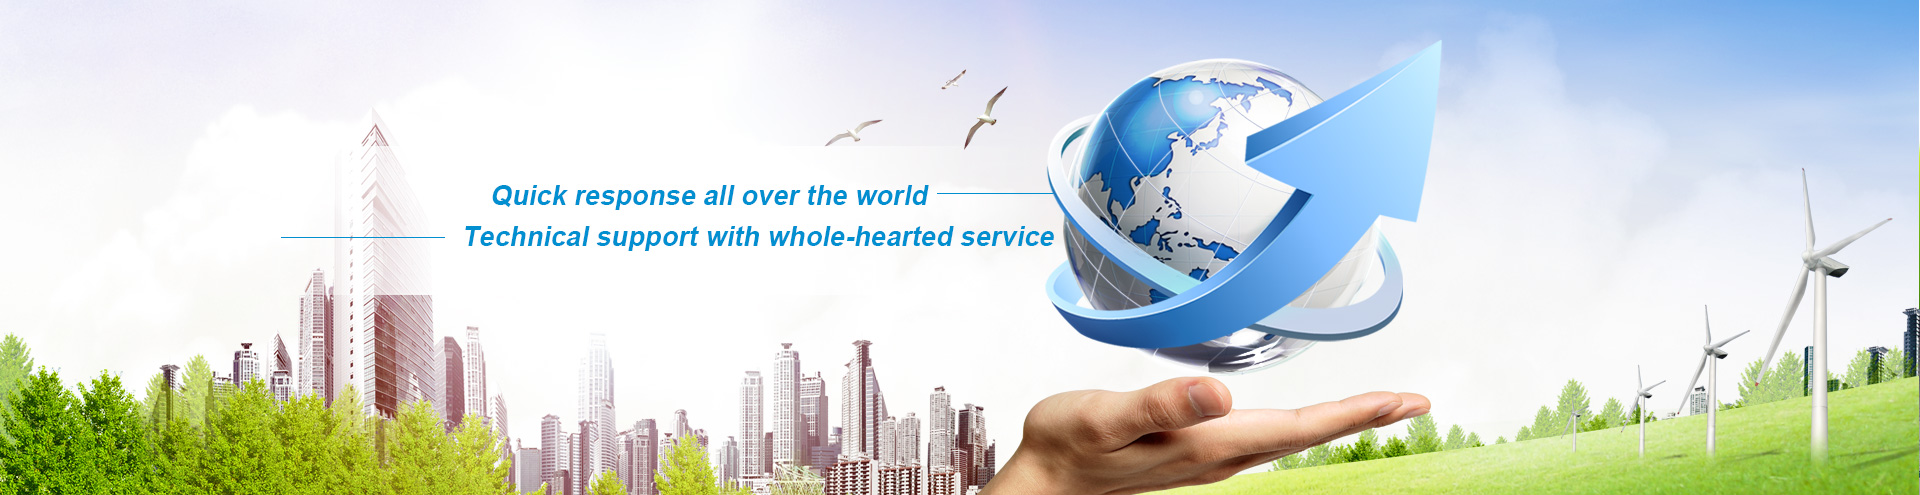 Quick response all over the world,Technical support with whole-hearted service